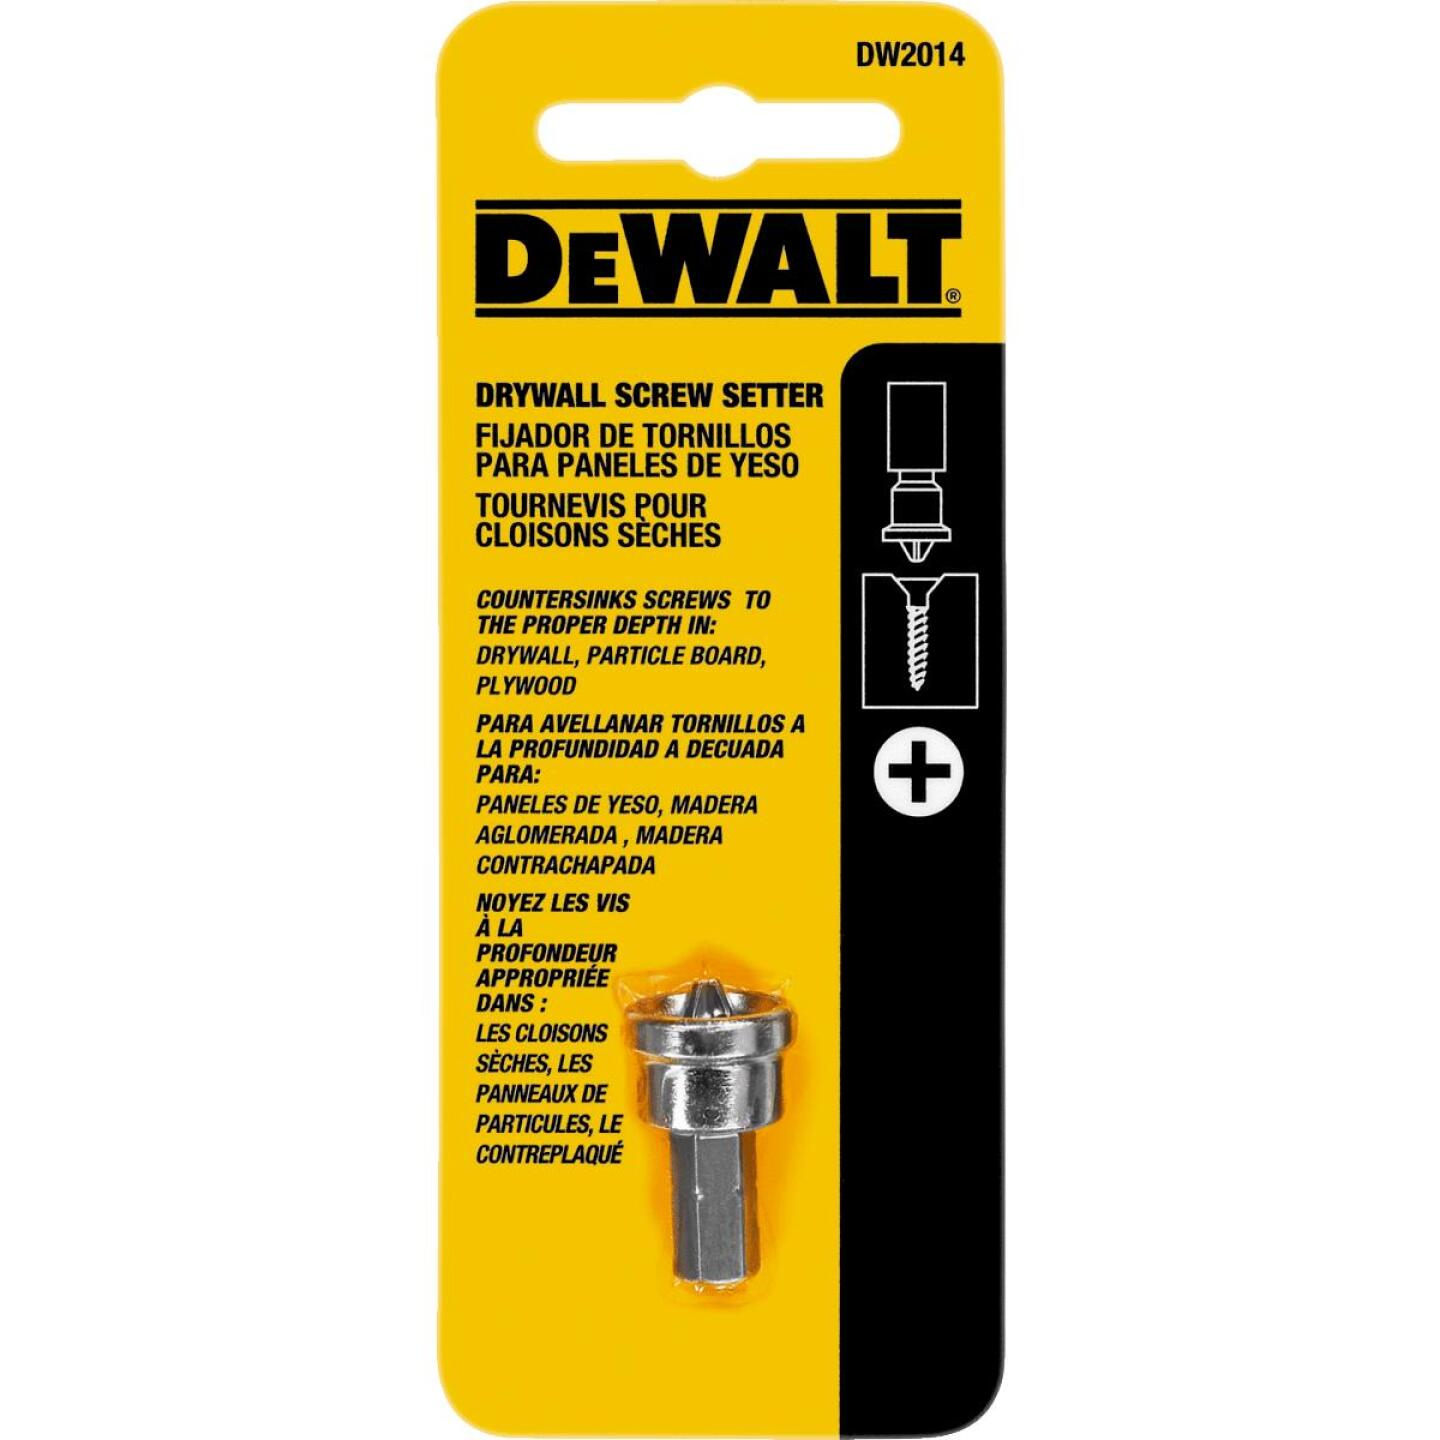 DeWalt #2 Phillips Insert Drywall Dimpler Screw Setter Image 1